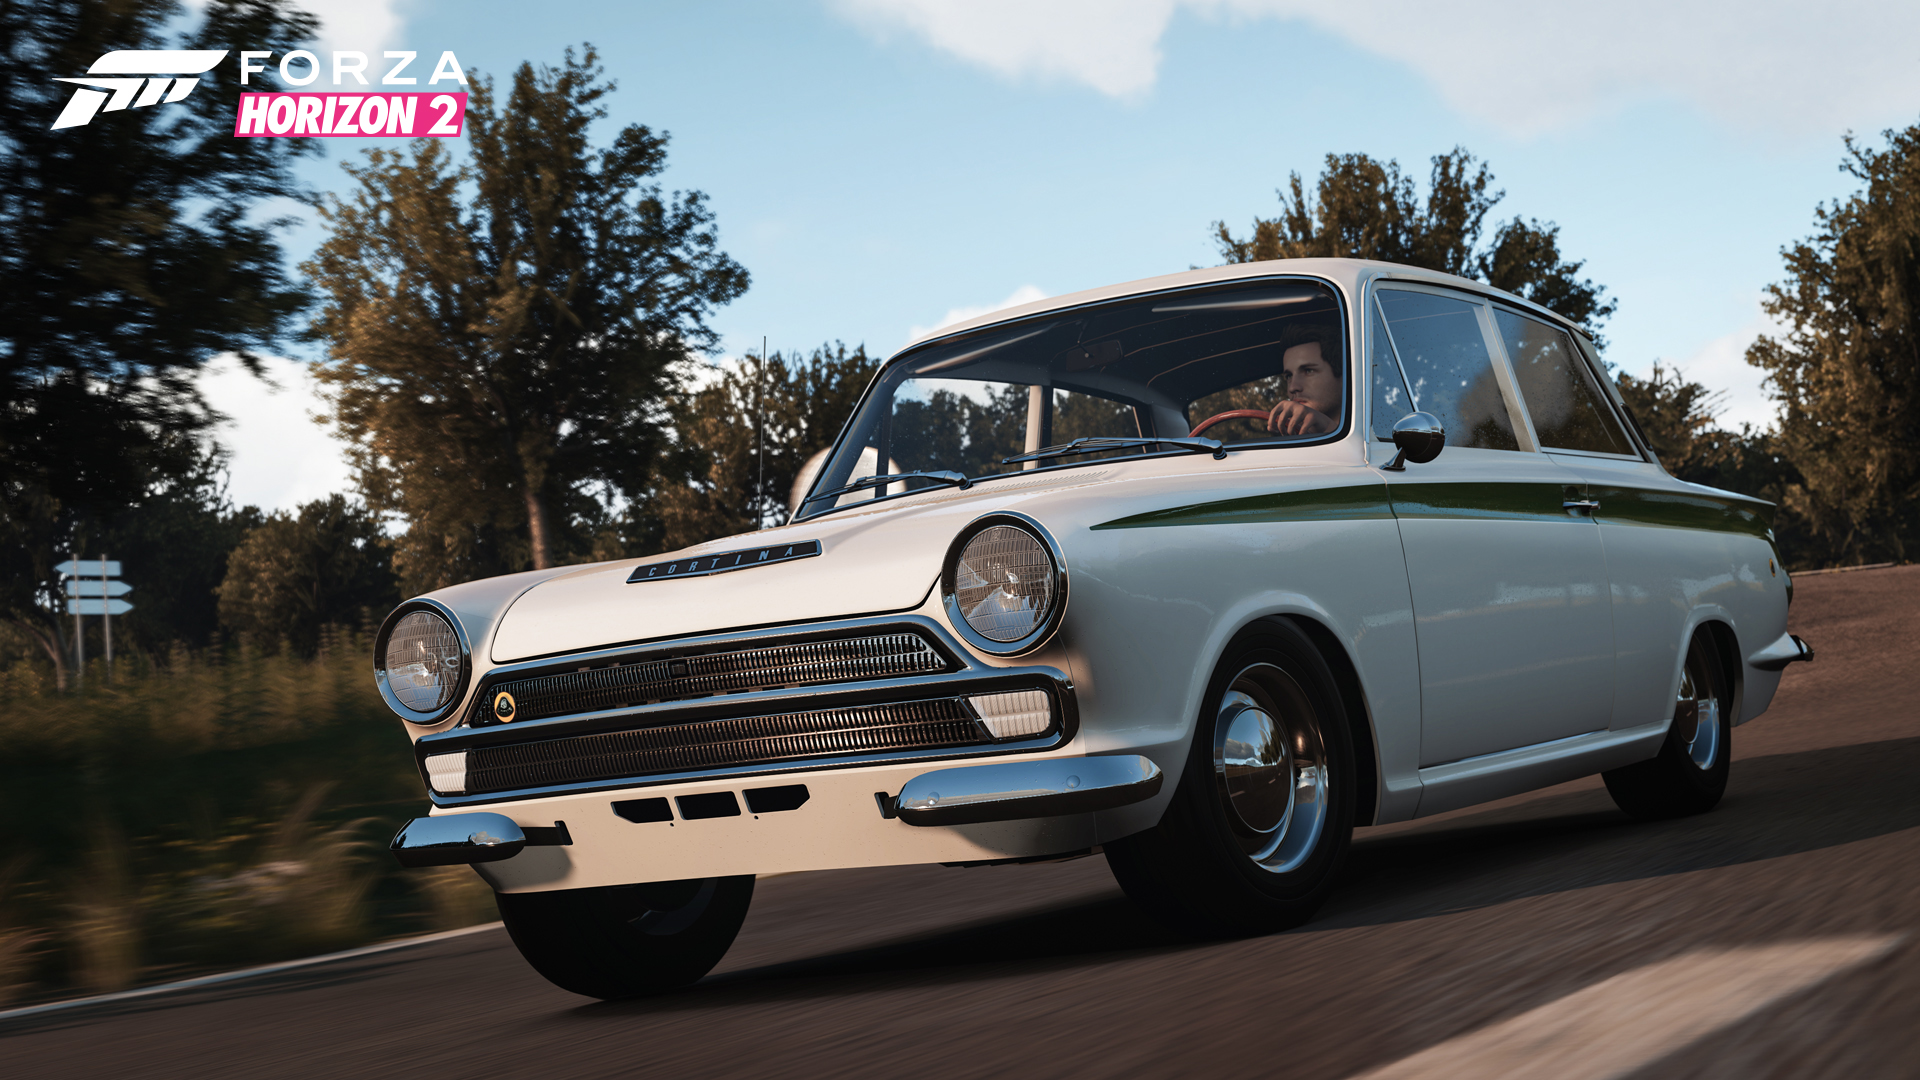 You can now download the Top Gear Car Pack for Forza Horizon 2 - VG247